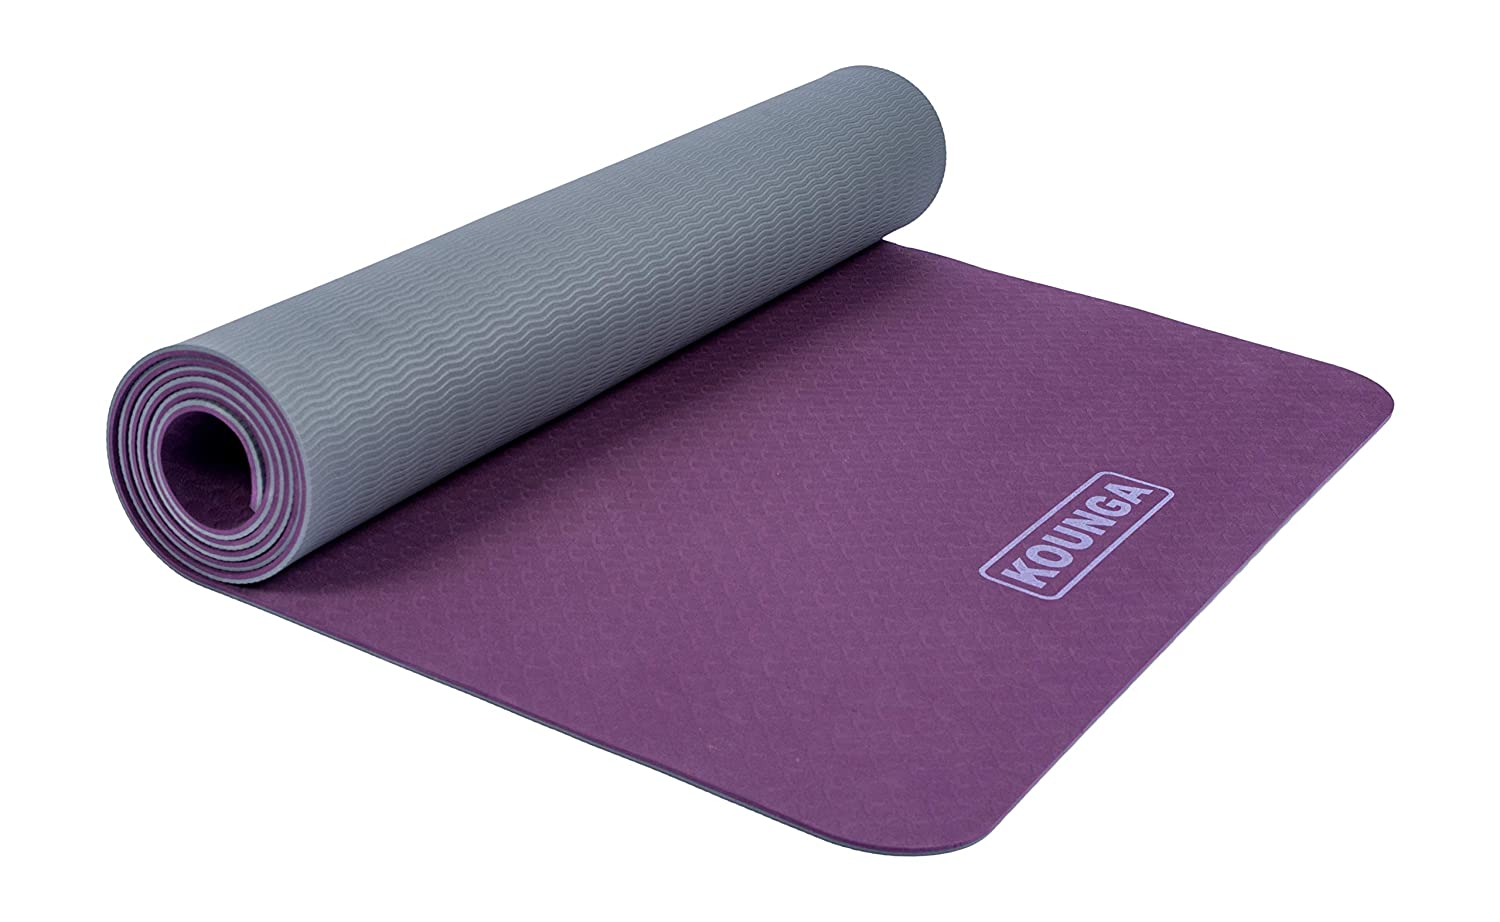 Kounga Pro Light 5 - Colchoneta Esterilla de Yoga, Unisex Adulto, Purple/Grey, 183 x 61 cm